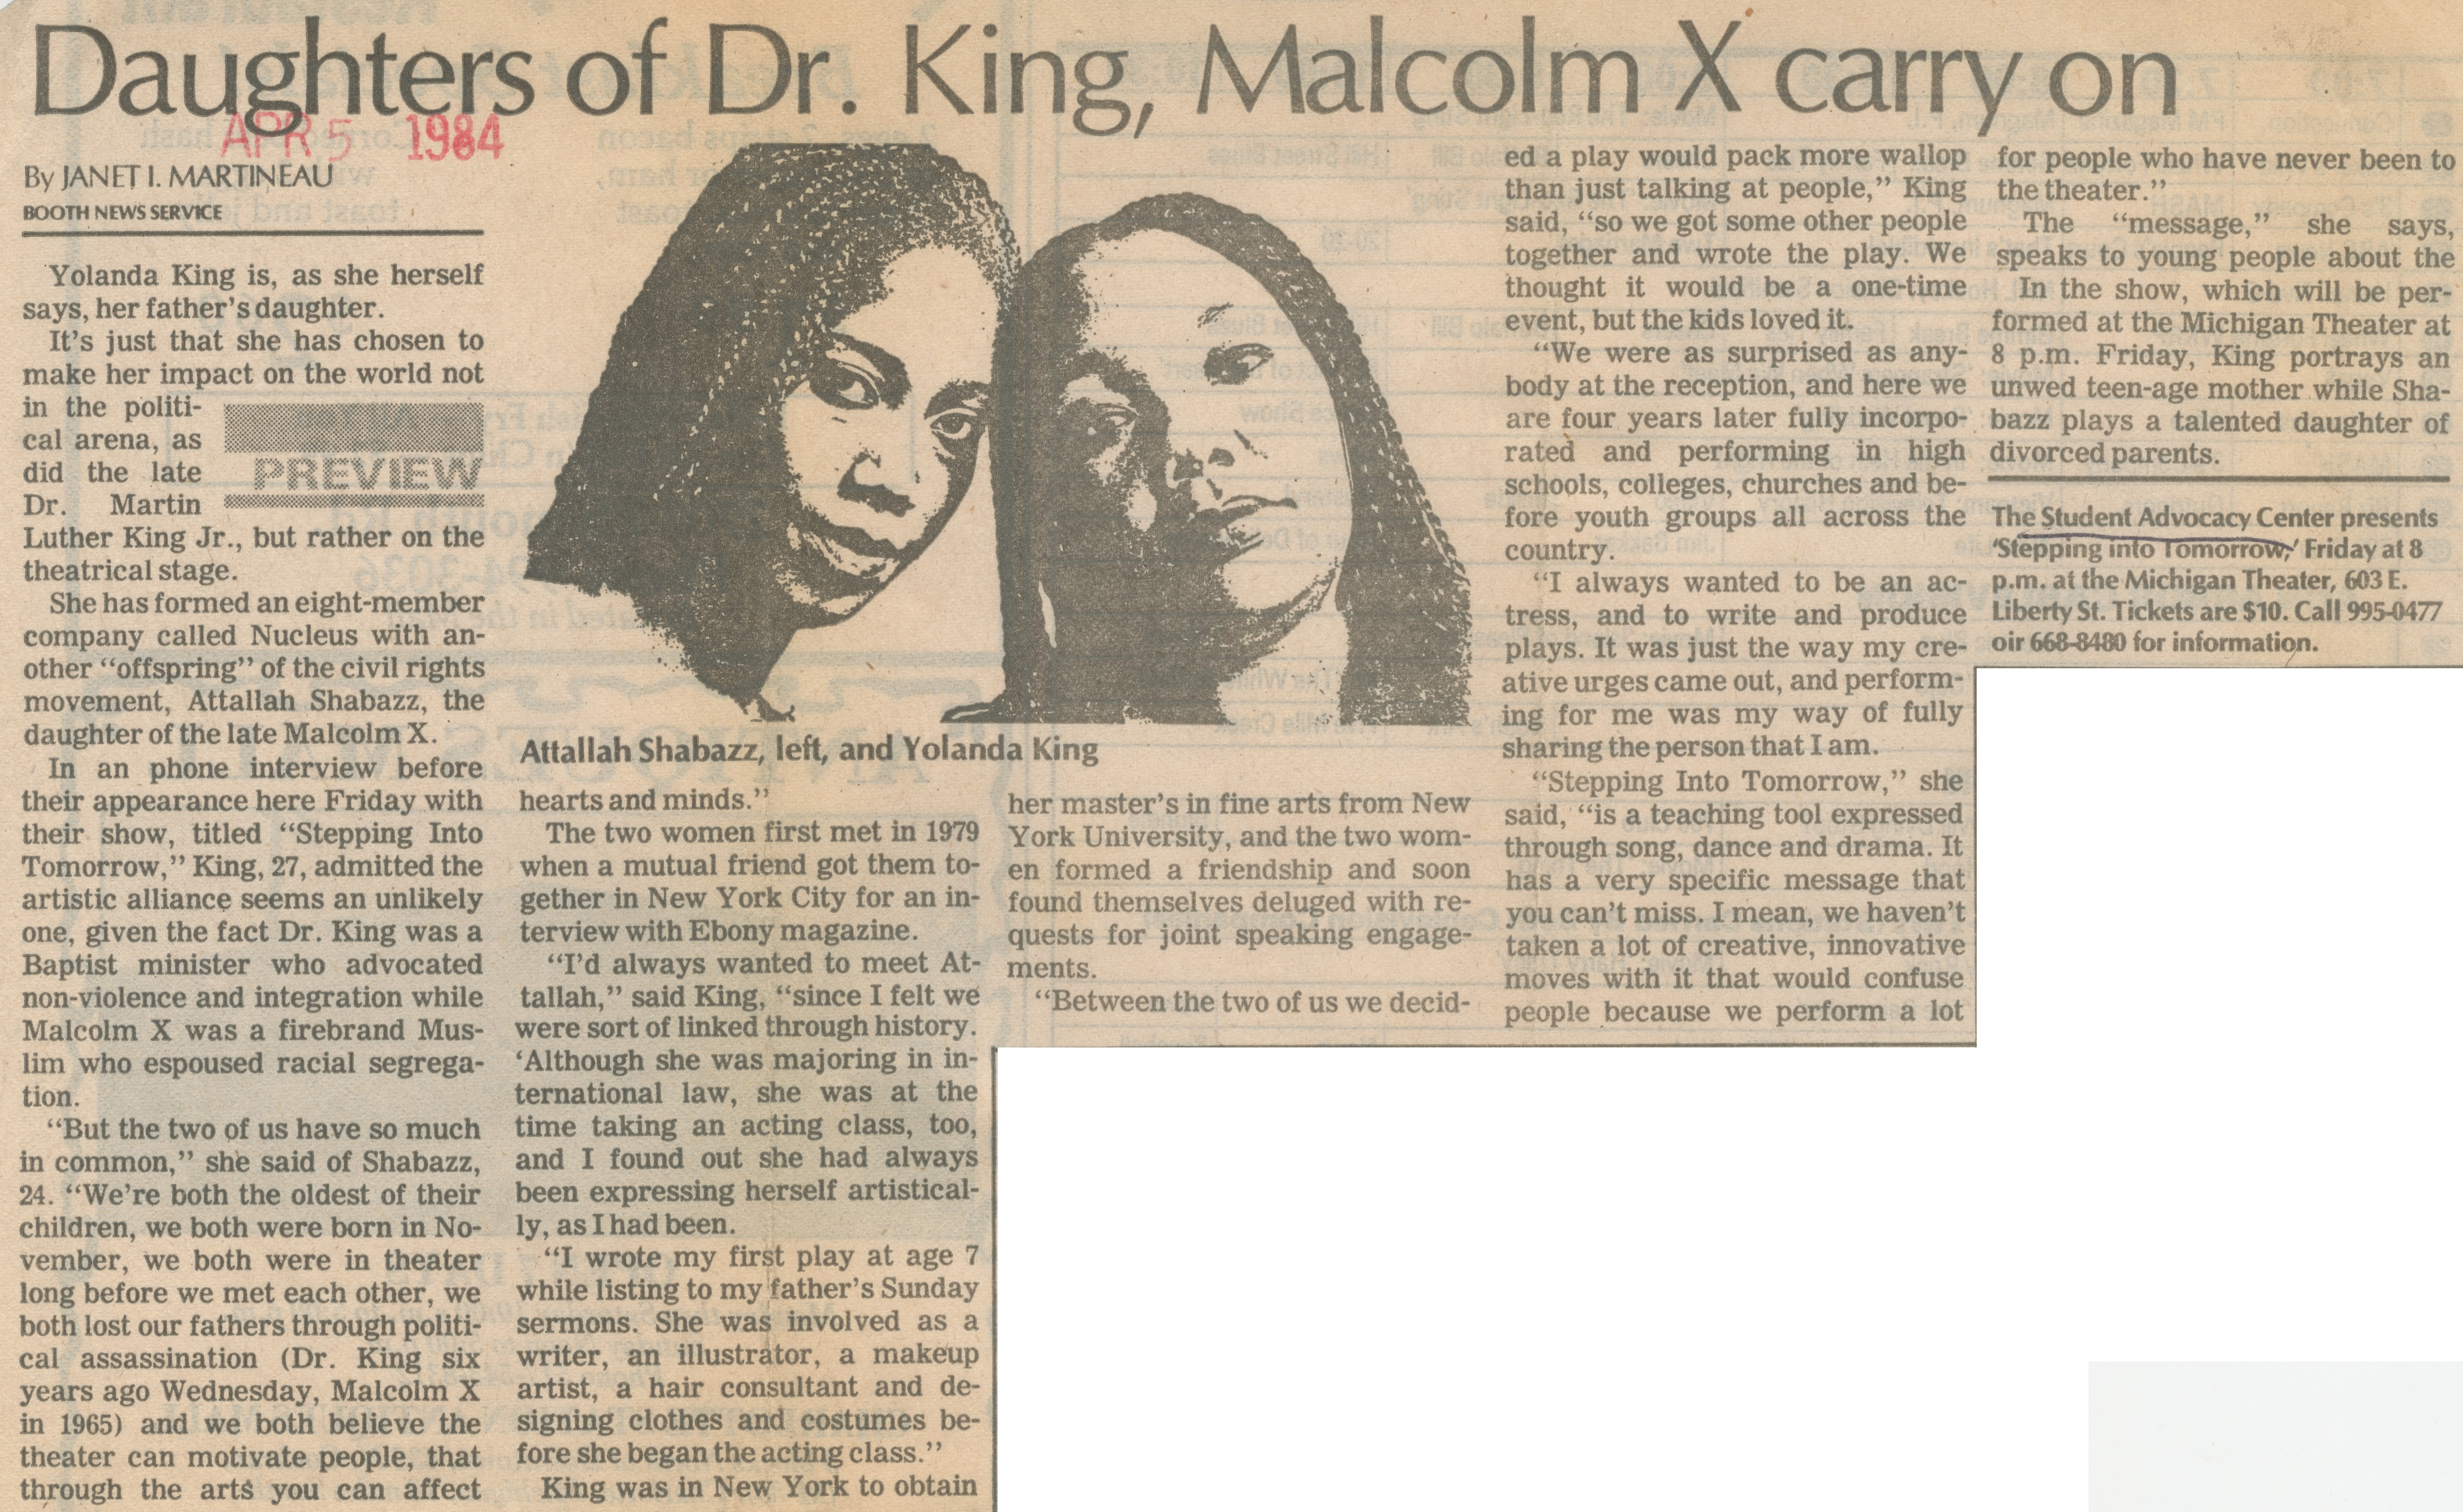 Daughters of Dr. King, Malcolm X Carry On image